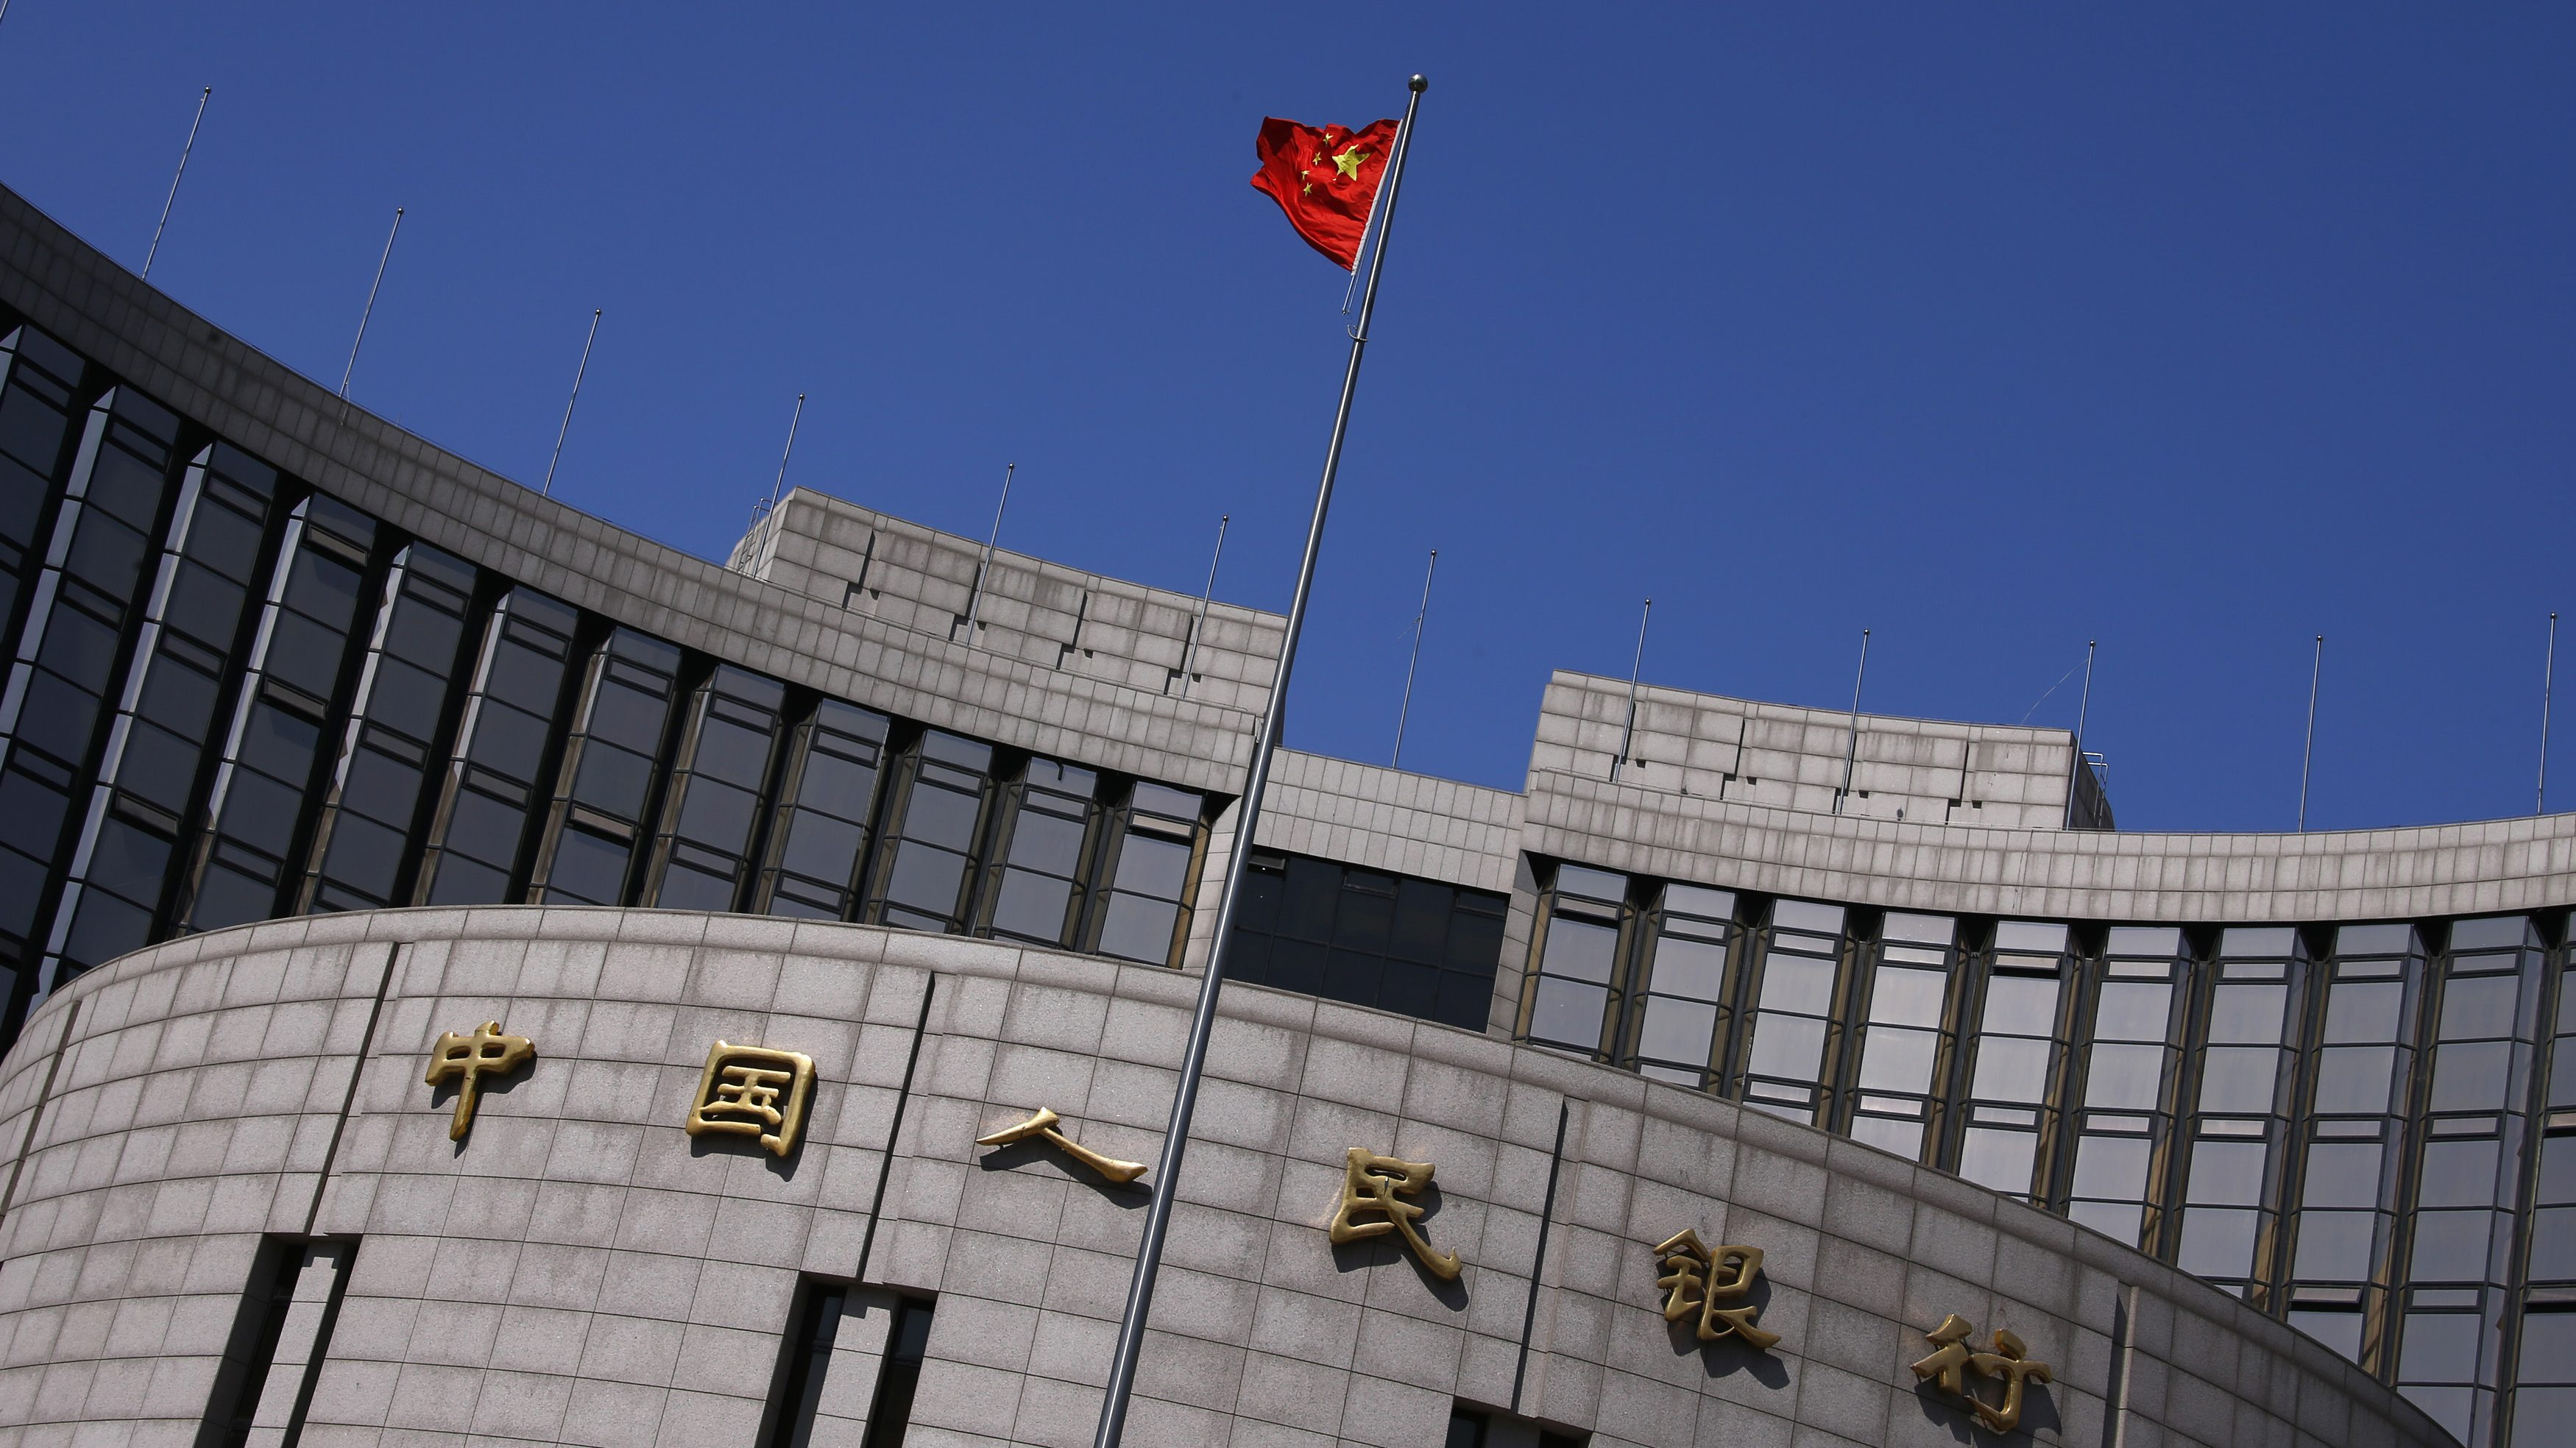 A Chinese national flag flutters outside the headquarters of the People's Bank of China, the Chinese central bank, in Beijing, April 3, 2014. Beijing's attack on yuan speculators has proven extraordinarily successful, so much so that traders no longer see it as a short-term intervention but a deeper market shift that has now gained a self-reinforcing momentum. That's bad news for speculators still holding onto bullish yuan positions. And for the People's Bank of China (PBOC), the risk is it has unleashed bearish forces it may not be able to rein in, souring enthusiasm for the yuan and complicating the push to increase the international adoption of the currency. To match Analysis CHINA-YUAN/    Picture taken April 3, 2014.